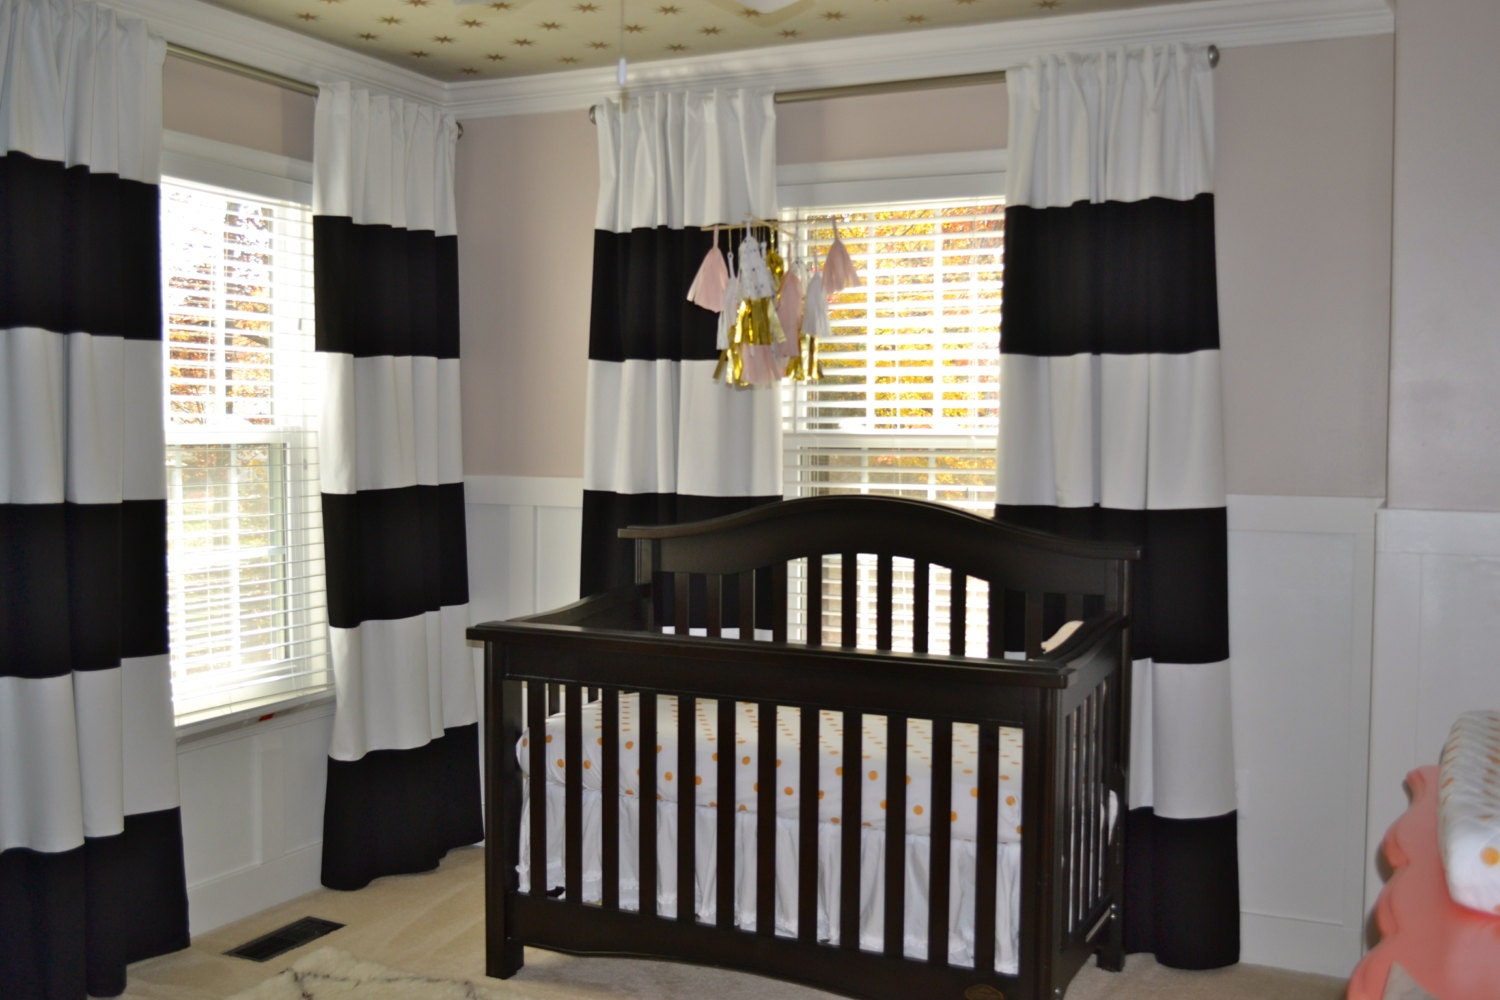 84 black and white horizontal striped curtains custom. Black Bedroom Furniture Sets. Home Design Ideas